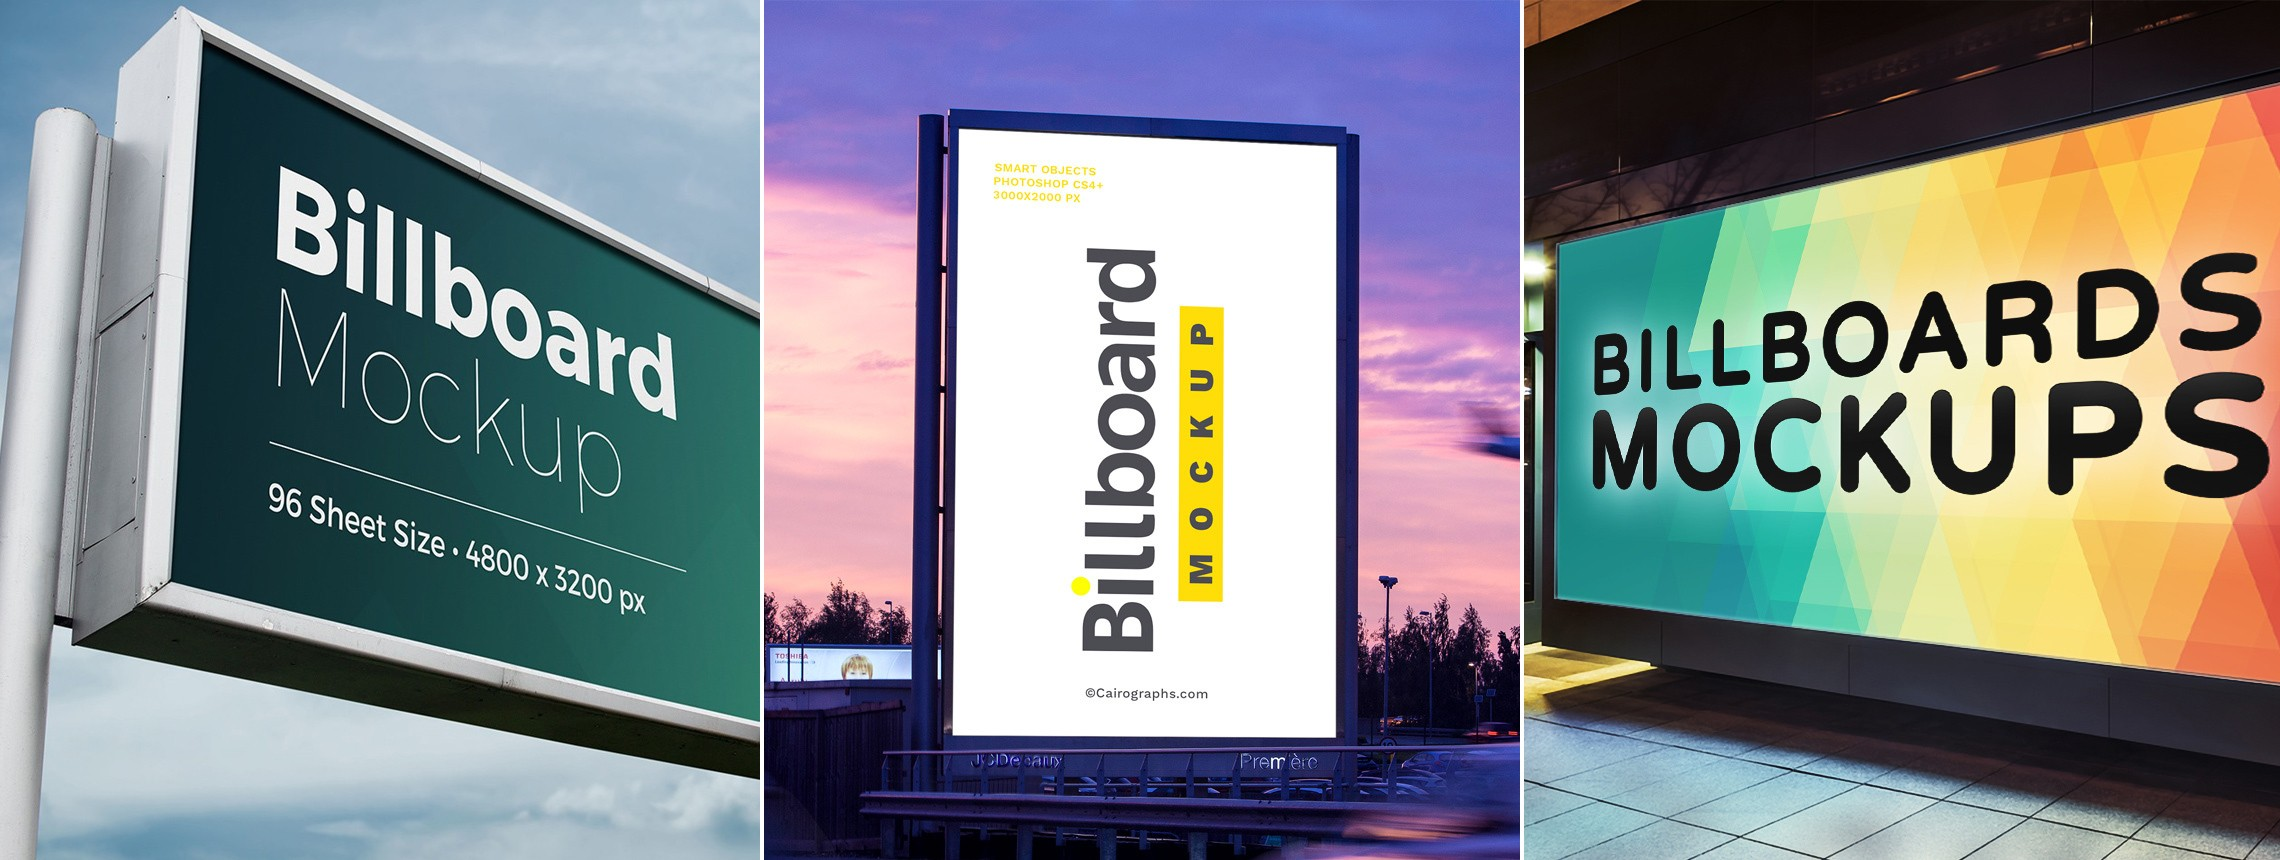 19 Billboard and Outdoor Advertising Mockups